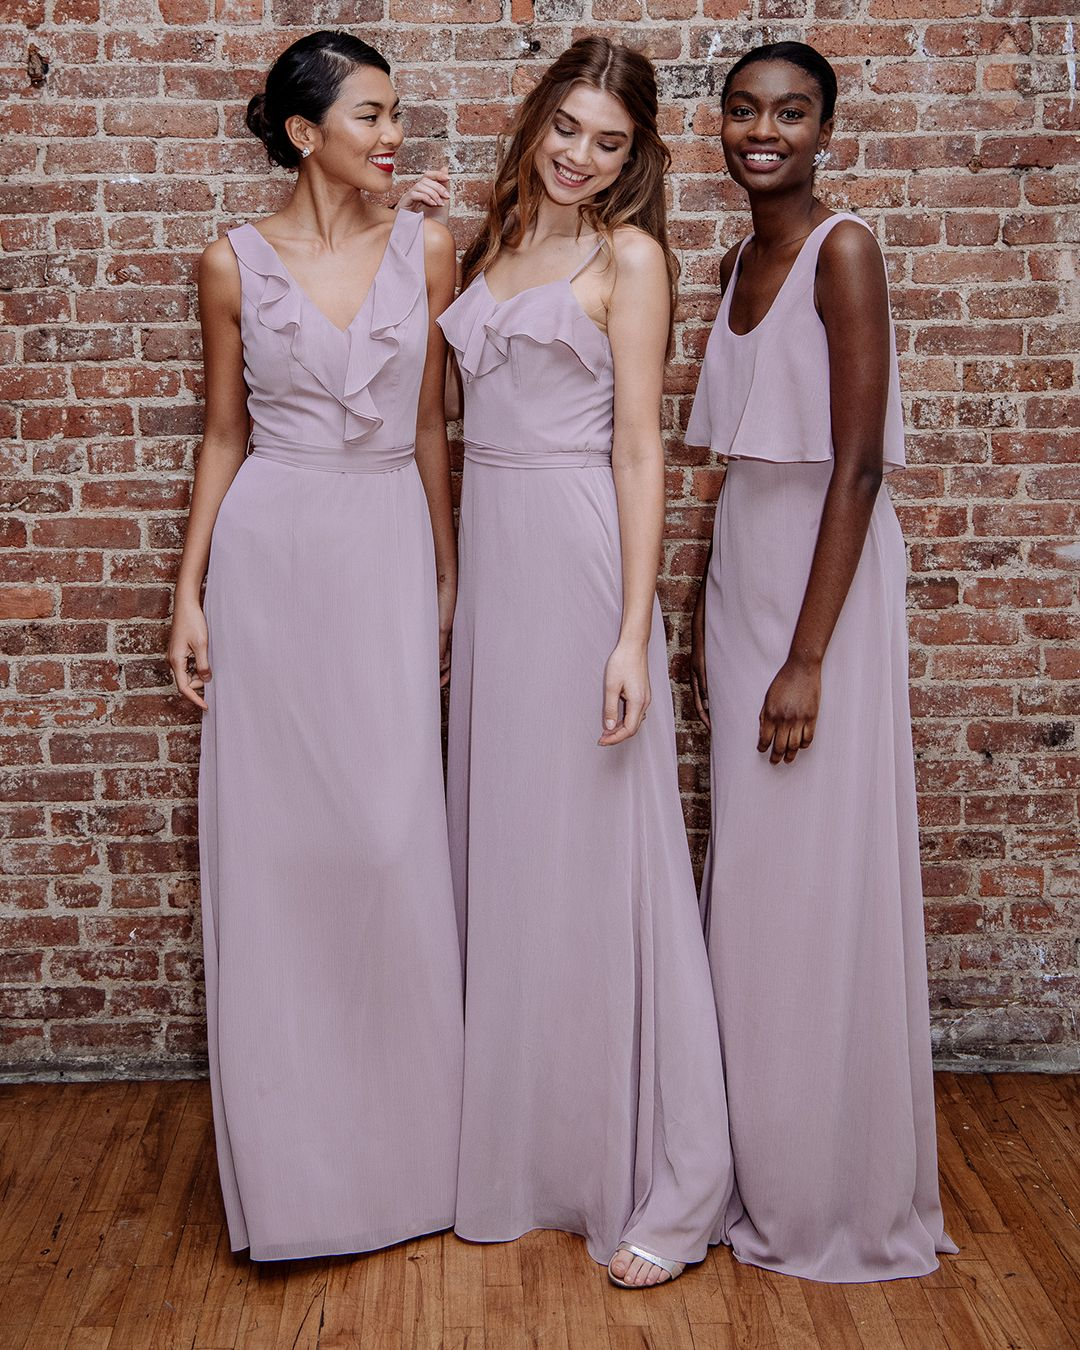 c009de78db25c The best bridesmaid trends you'll see in 2019 spring bridesmaid dresses. A  peek at the newest gowns from David's Bridal's Spring 2019 bridesmaid  collection.